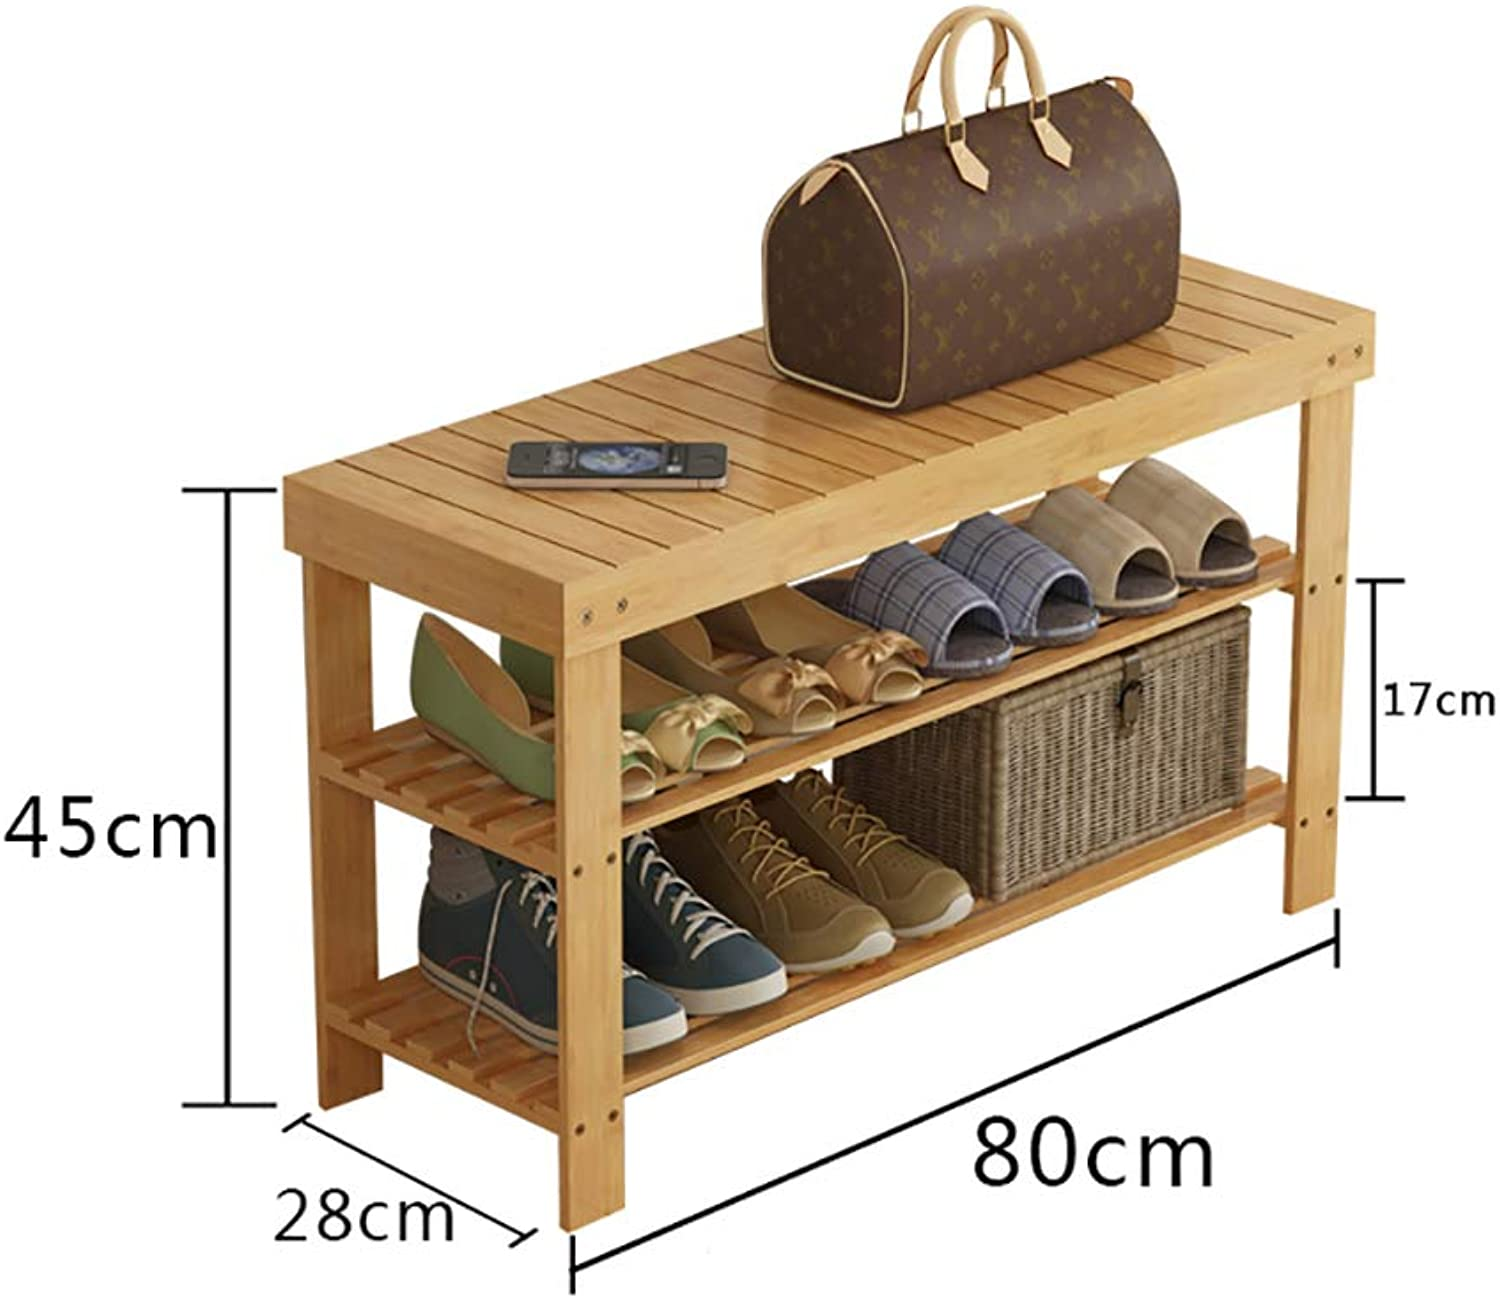 Entrance shoes Rack shoesbox Change shoes Bench Shelf Storage Shelf Multifunction 2 Layer Household Dorm Room Space Saving Doorway Bamboo (color   A, Size   80  28  45CM)